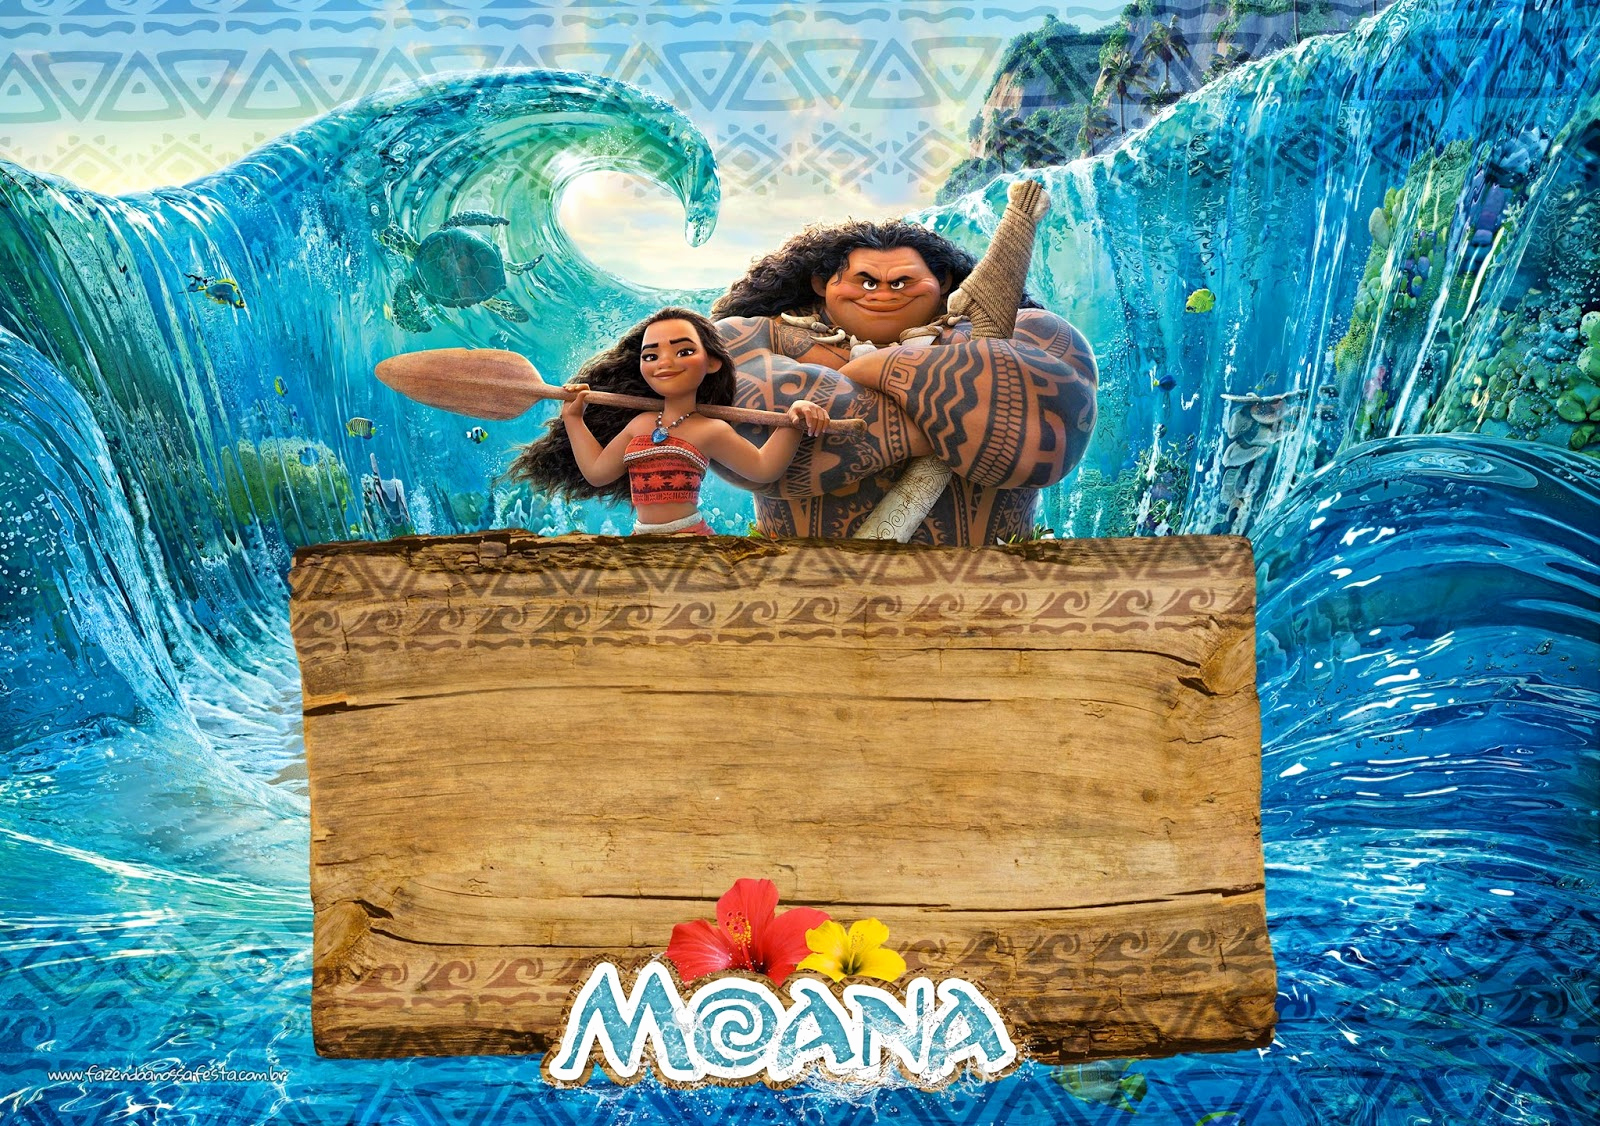 Moana Invitation Template Free Beautiful Moana Free Printable Invitations